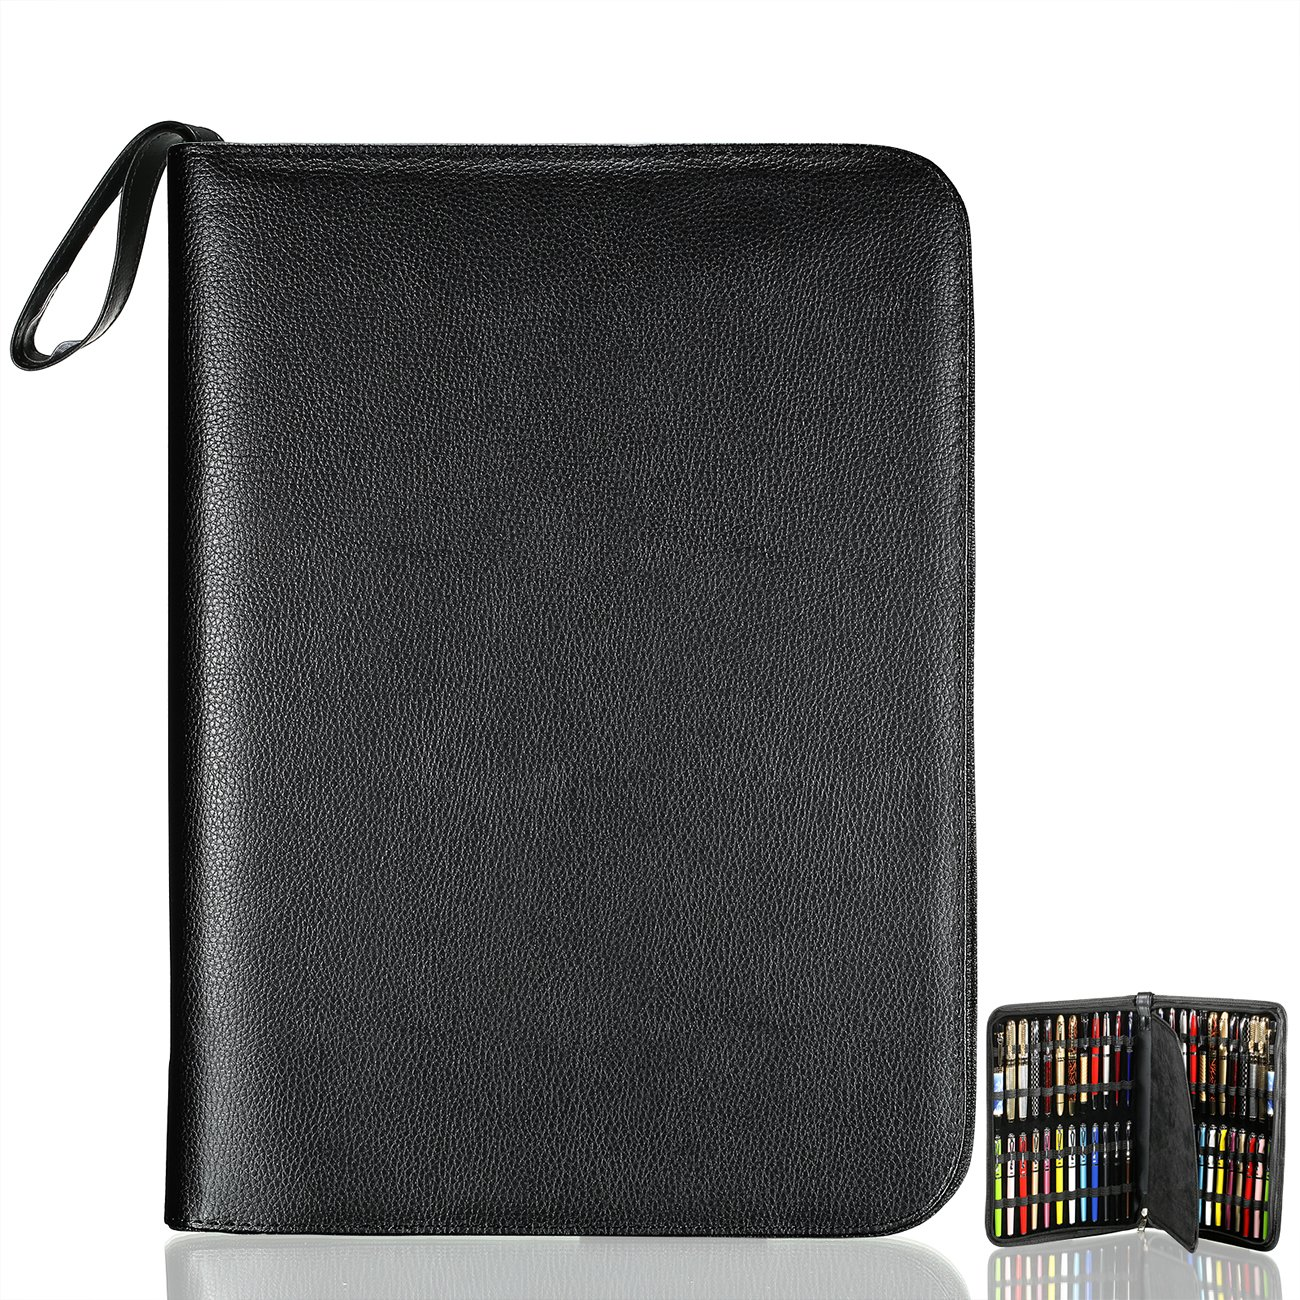 Fountain Roller Pen Case Holder Black PU Leather Bag for 48 Pens Collection by Aonepro